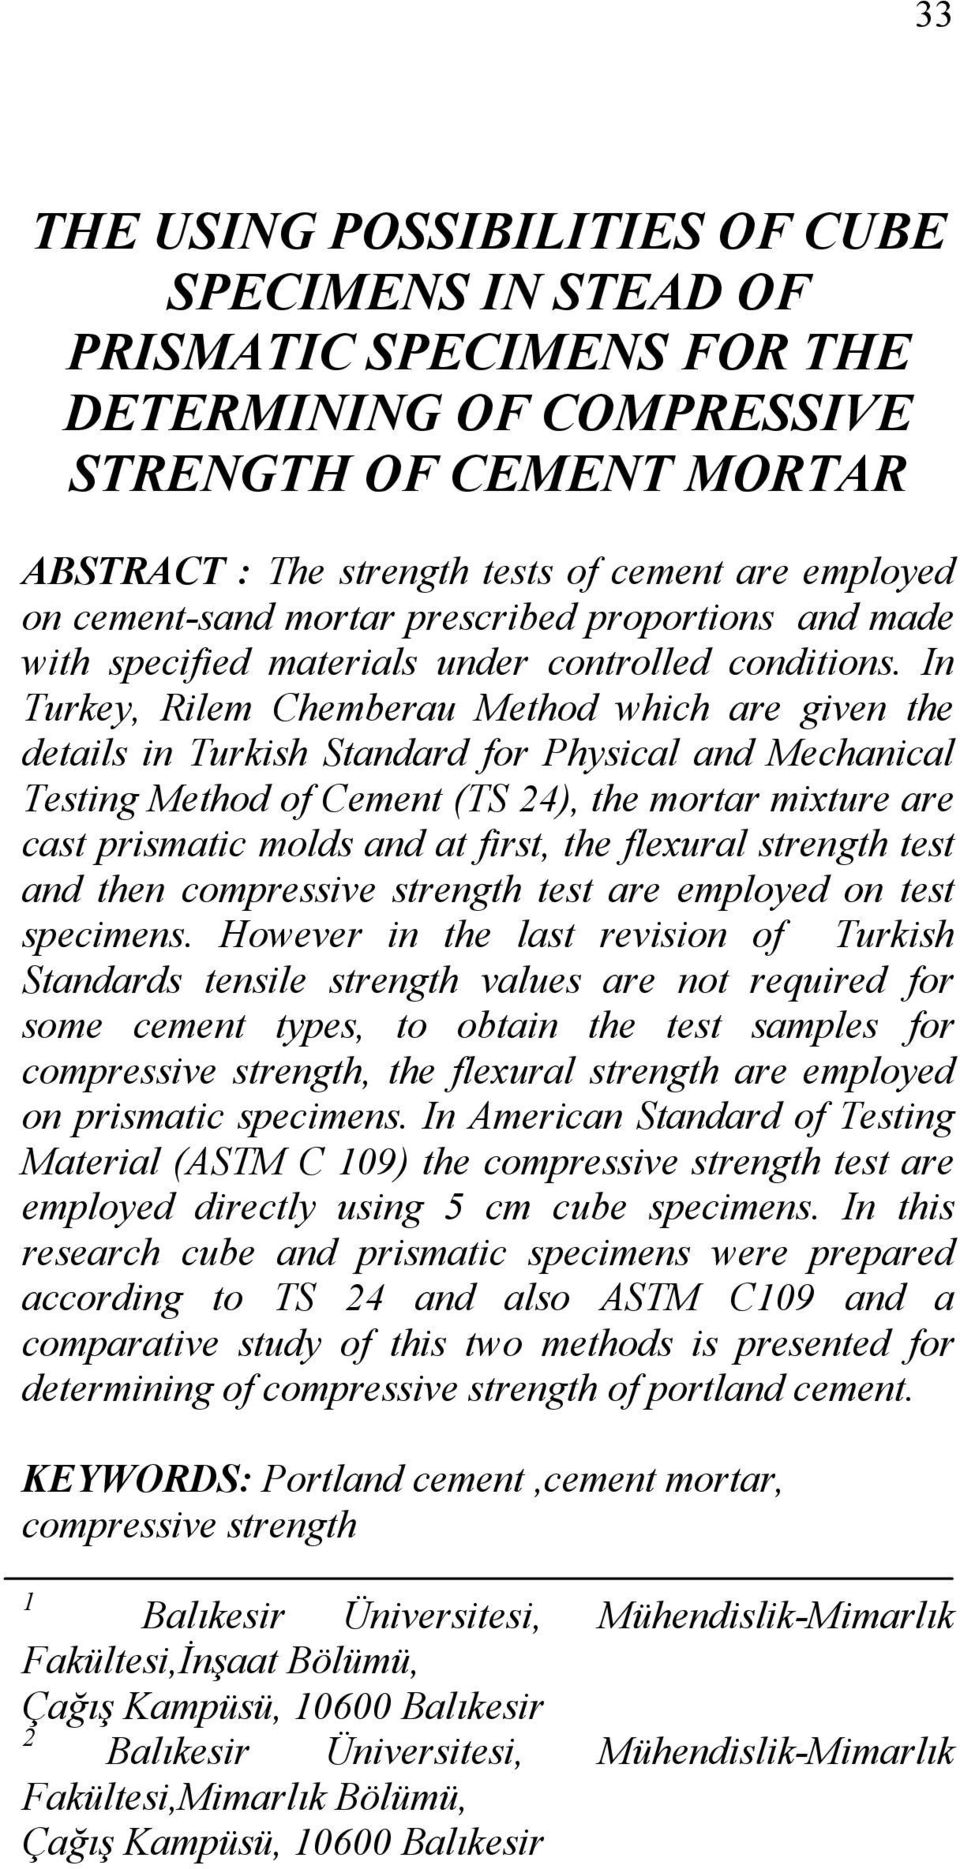 In Turkey, Rilem Chemberau Method which are given the details in Turkish Standard for Physical and Mechanical Testing Method of Cement (TS 24), the mortar mixture are cast prismatic molds and at